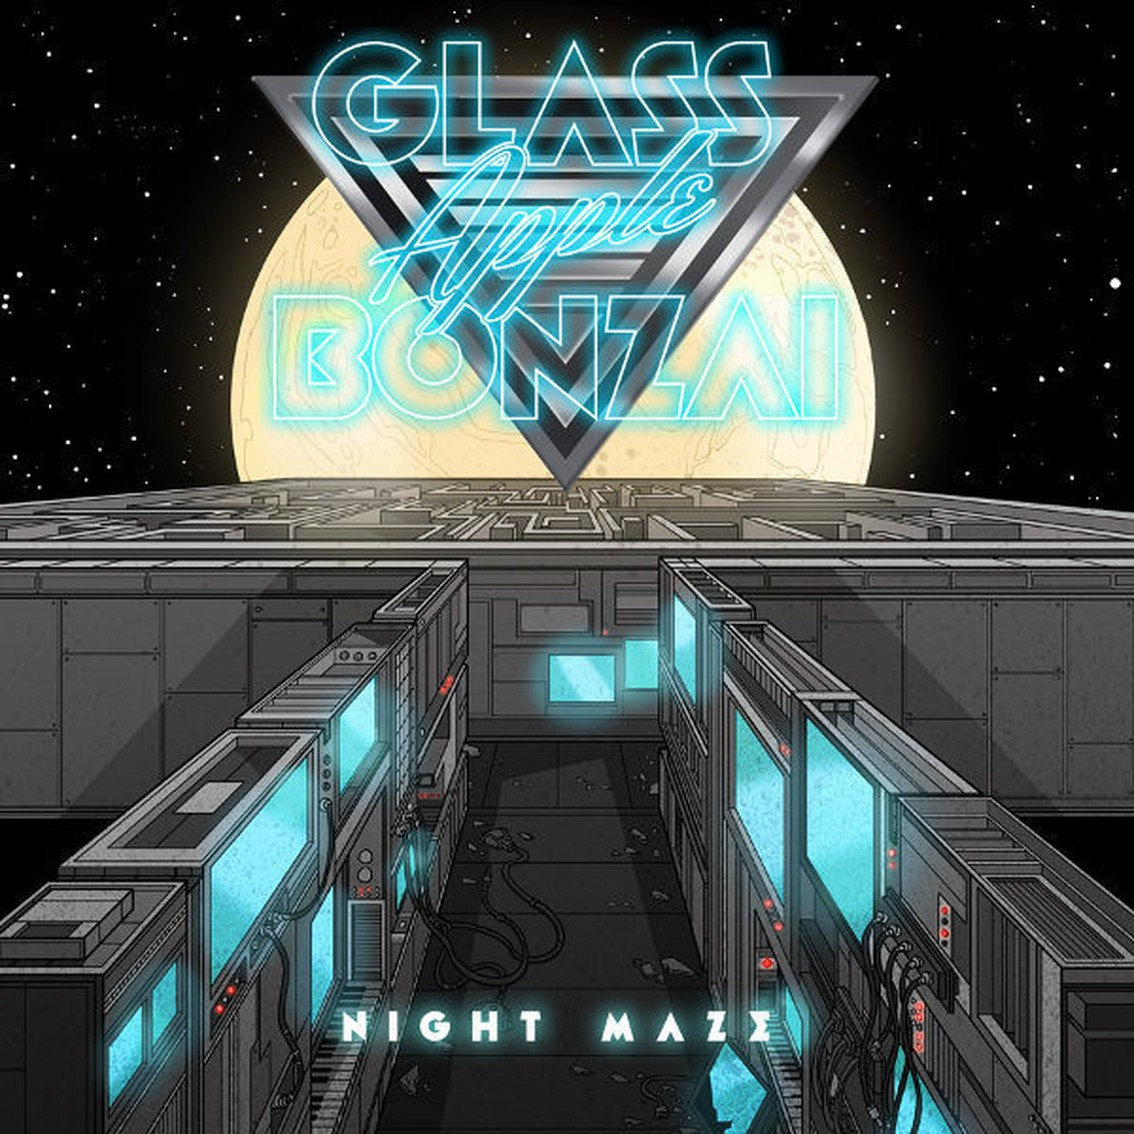 Glass Apple Bonzai sees limited run new album 'Night Maze' released, all hand numbered